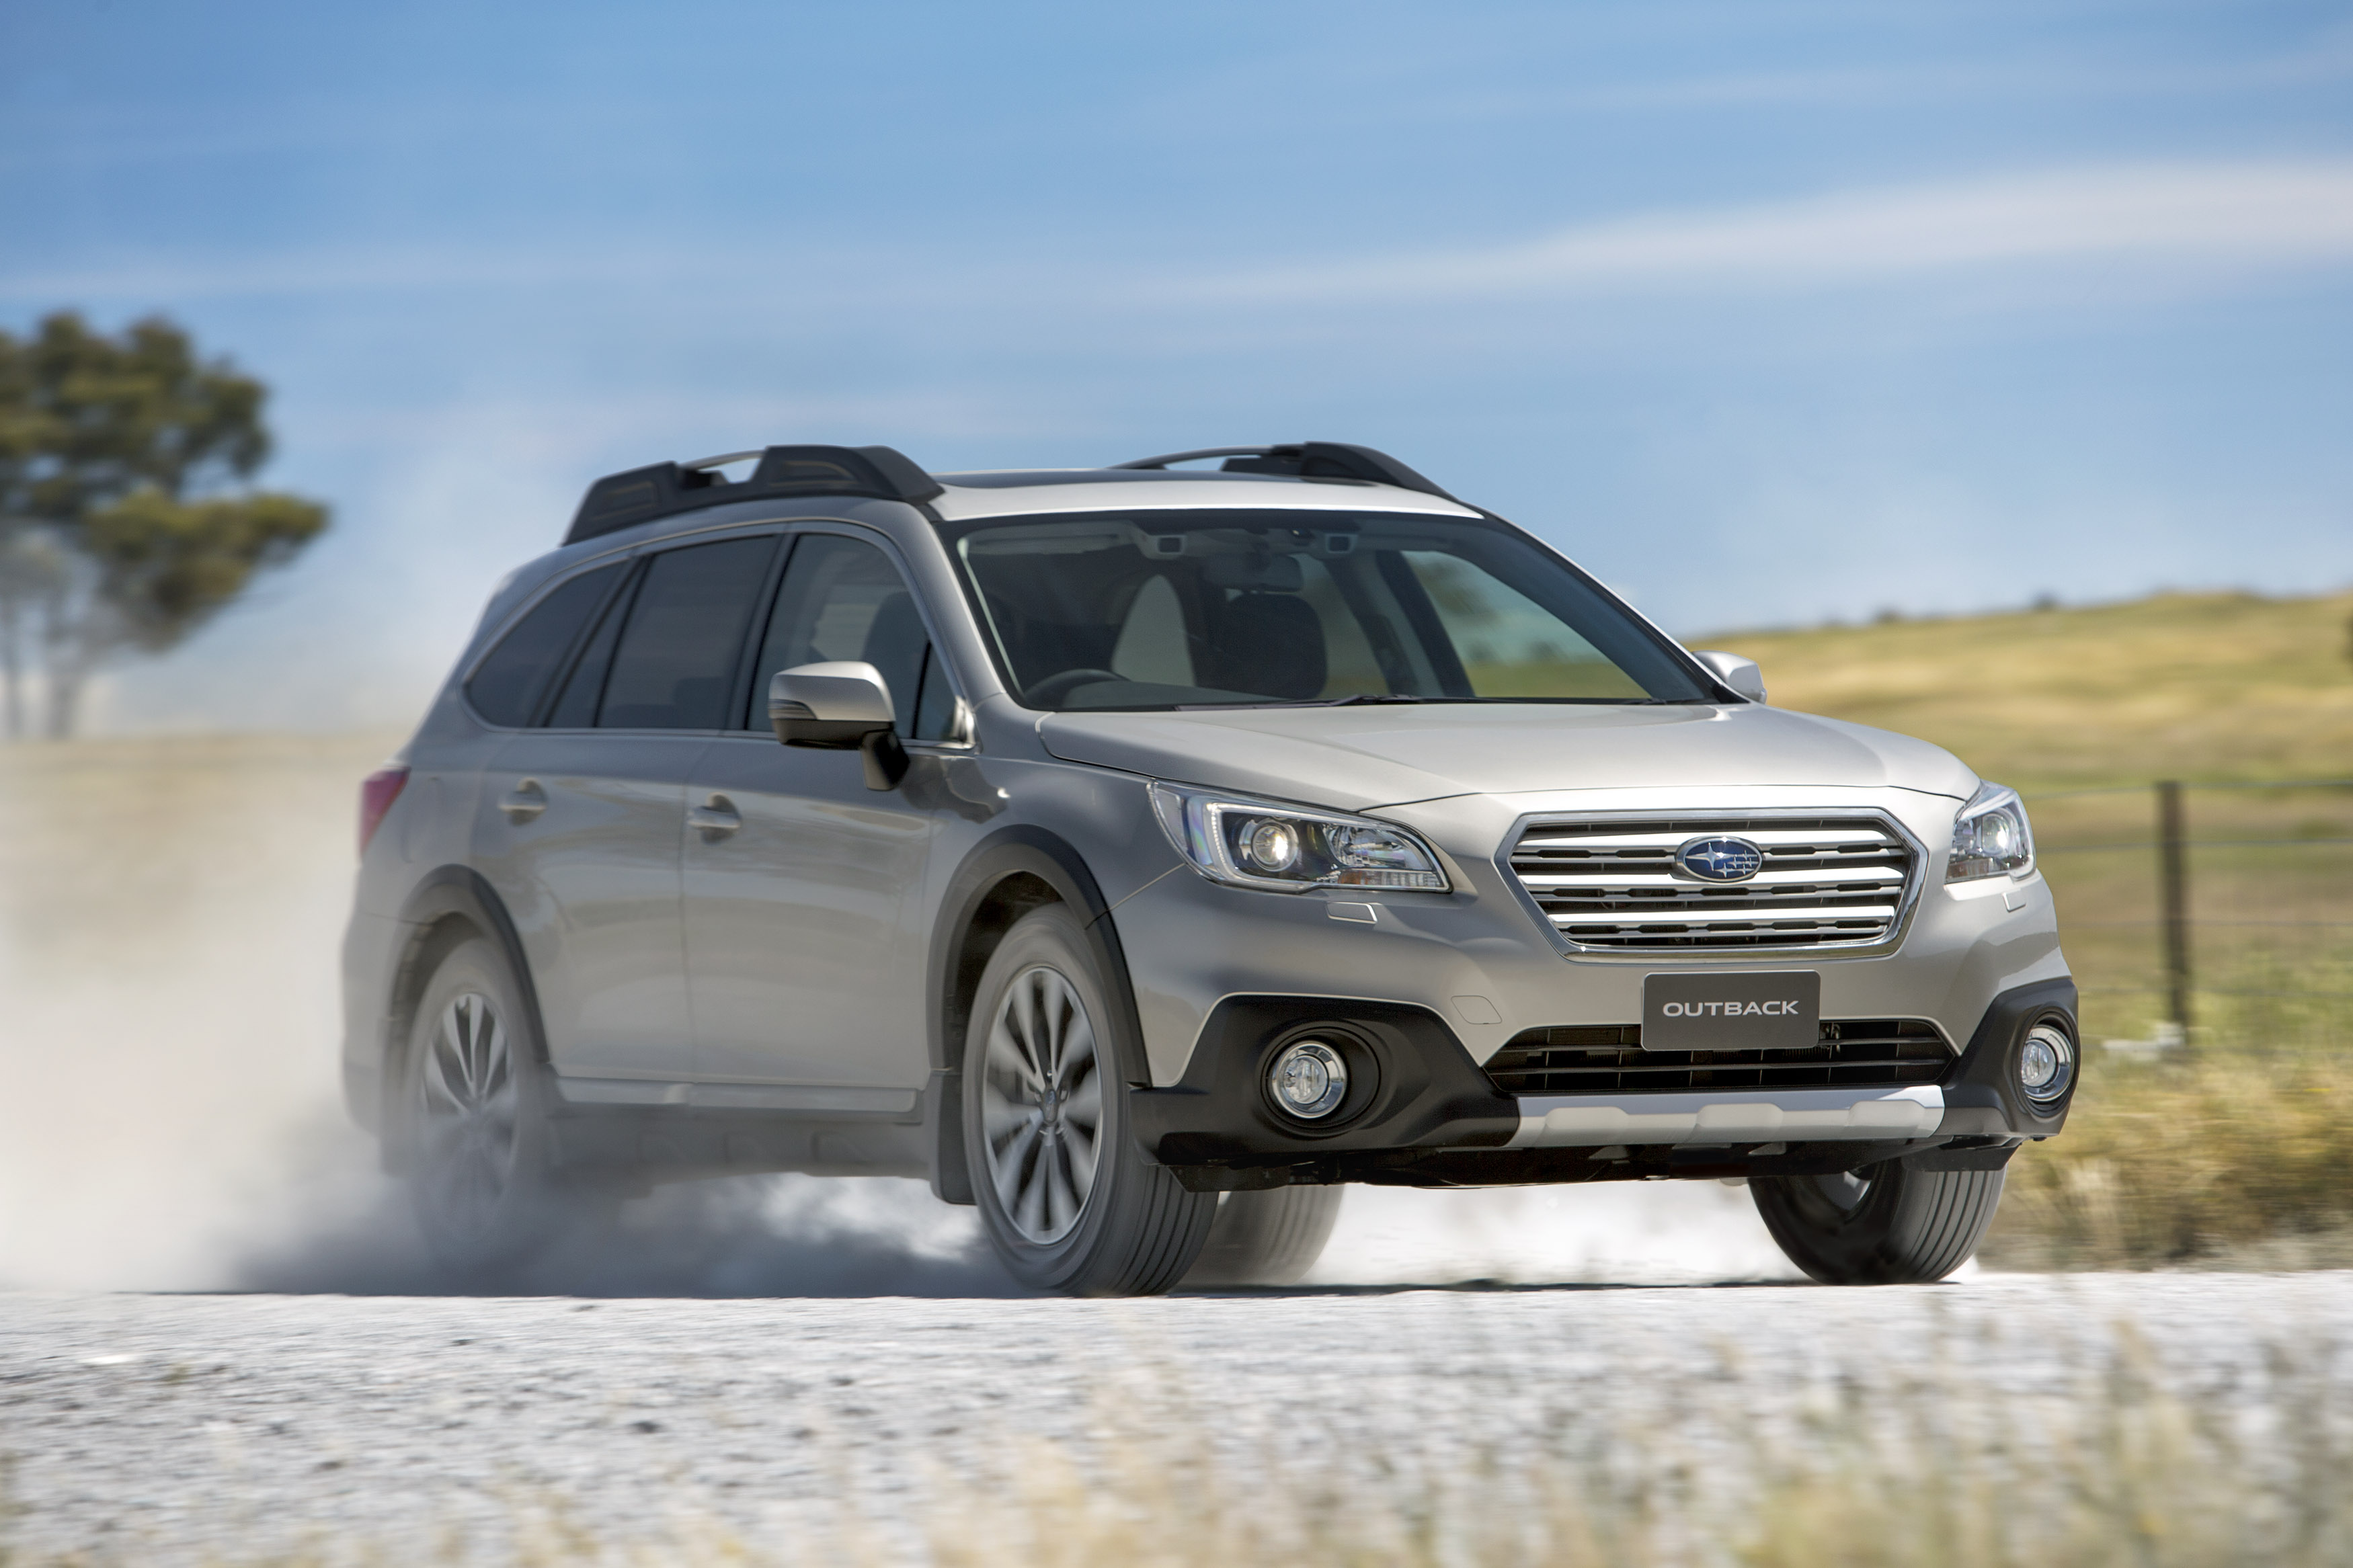 2015 Subaru Outback Review Caradvice